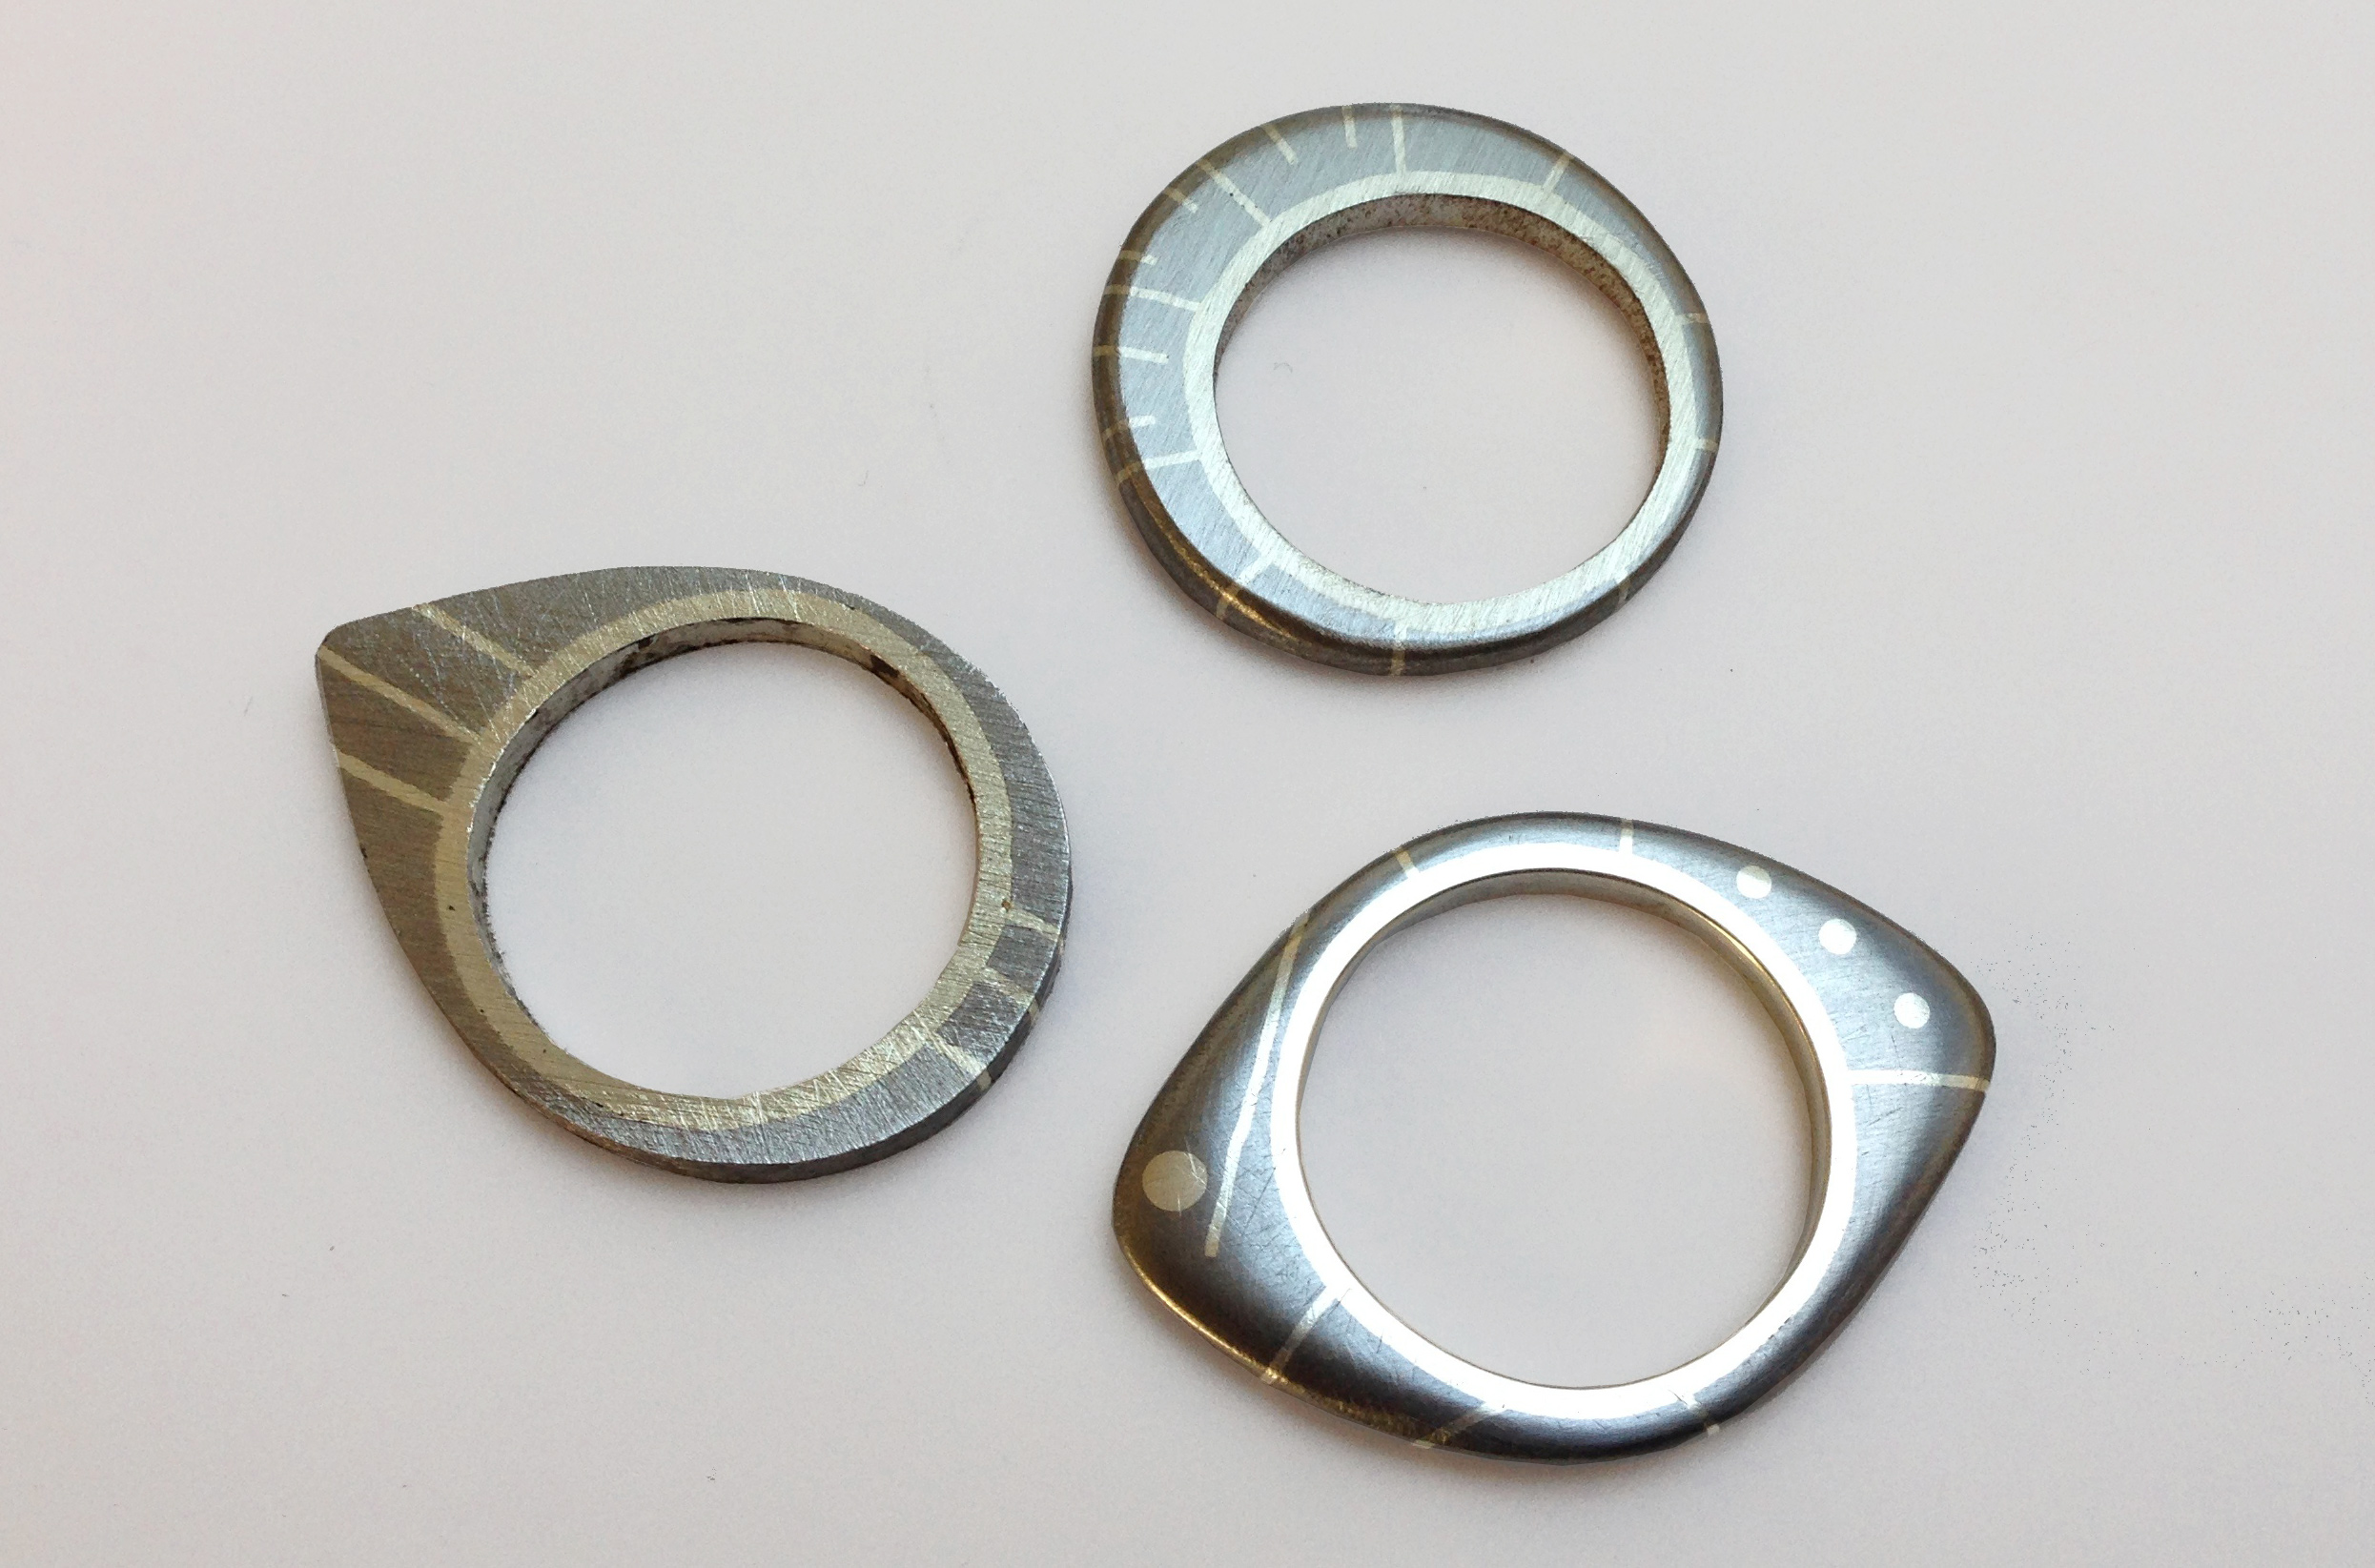 married metals technique showing steel and silver combinations